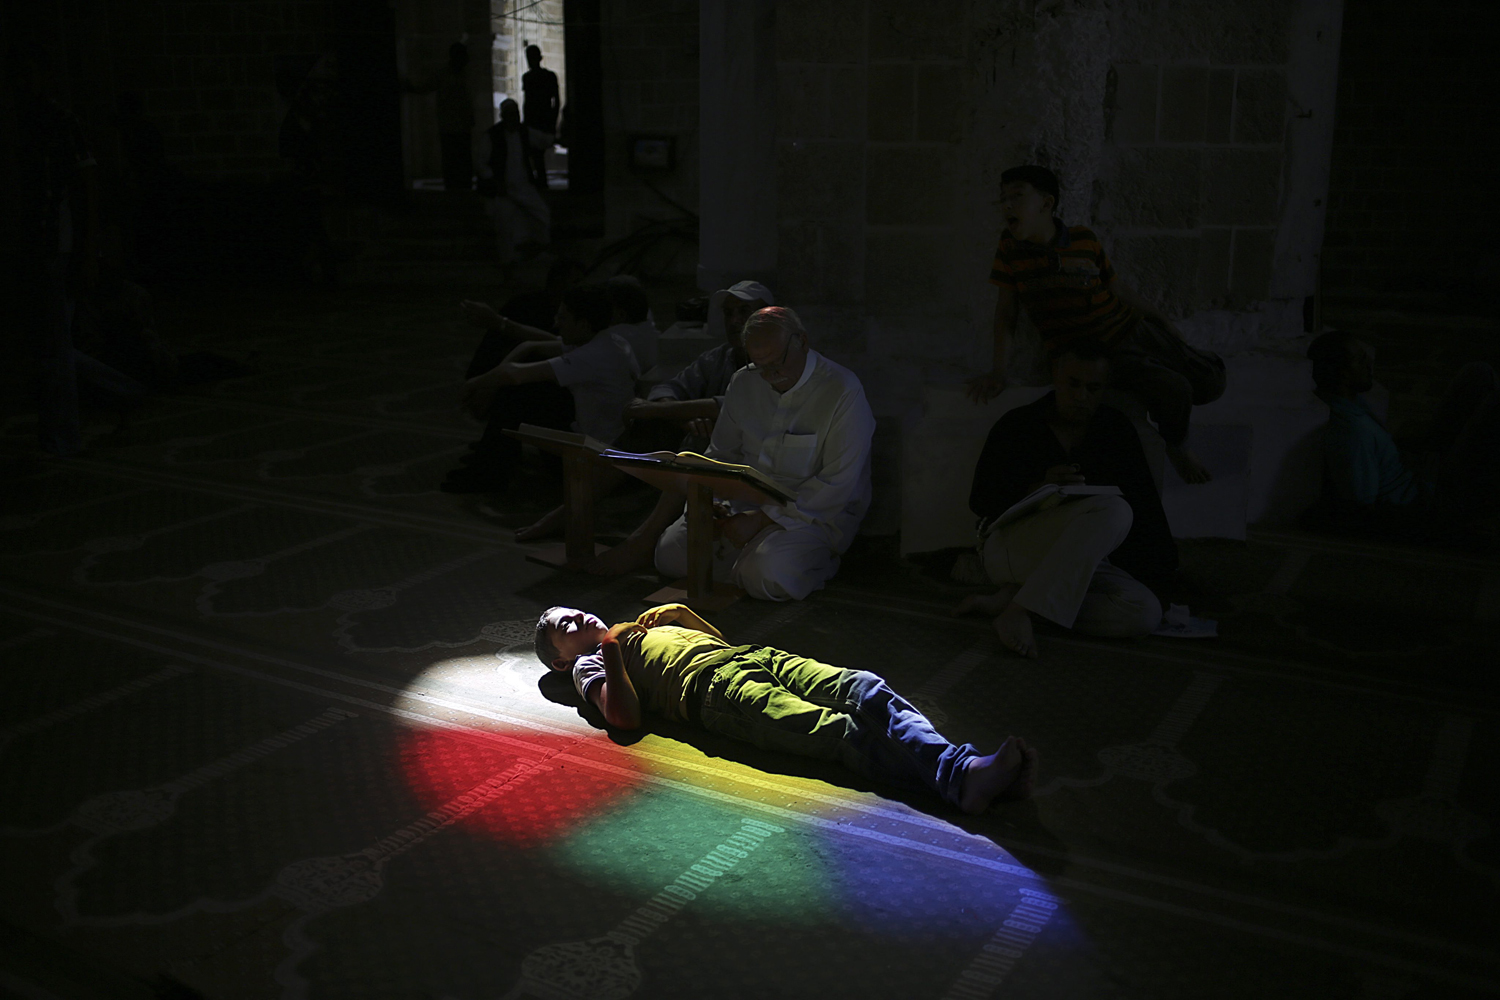 July 11, 2013. A Palestinian child rests as others pray and read the Quran in a mosque during the holy month of Ramadan in Gaza City.